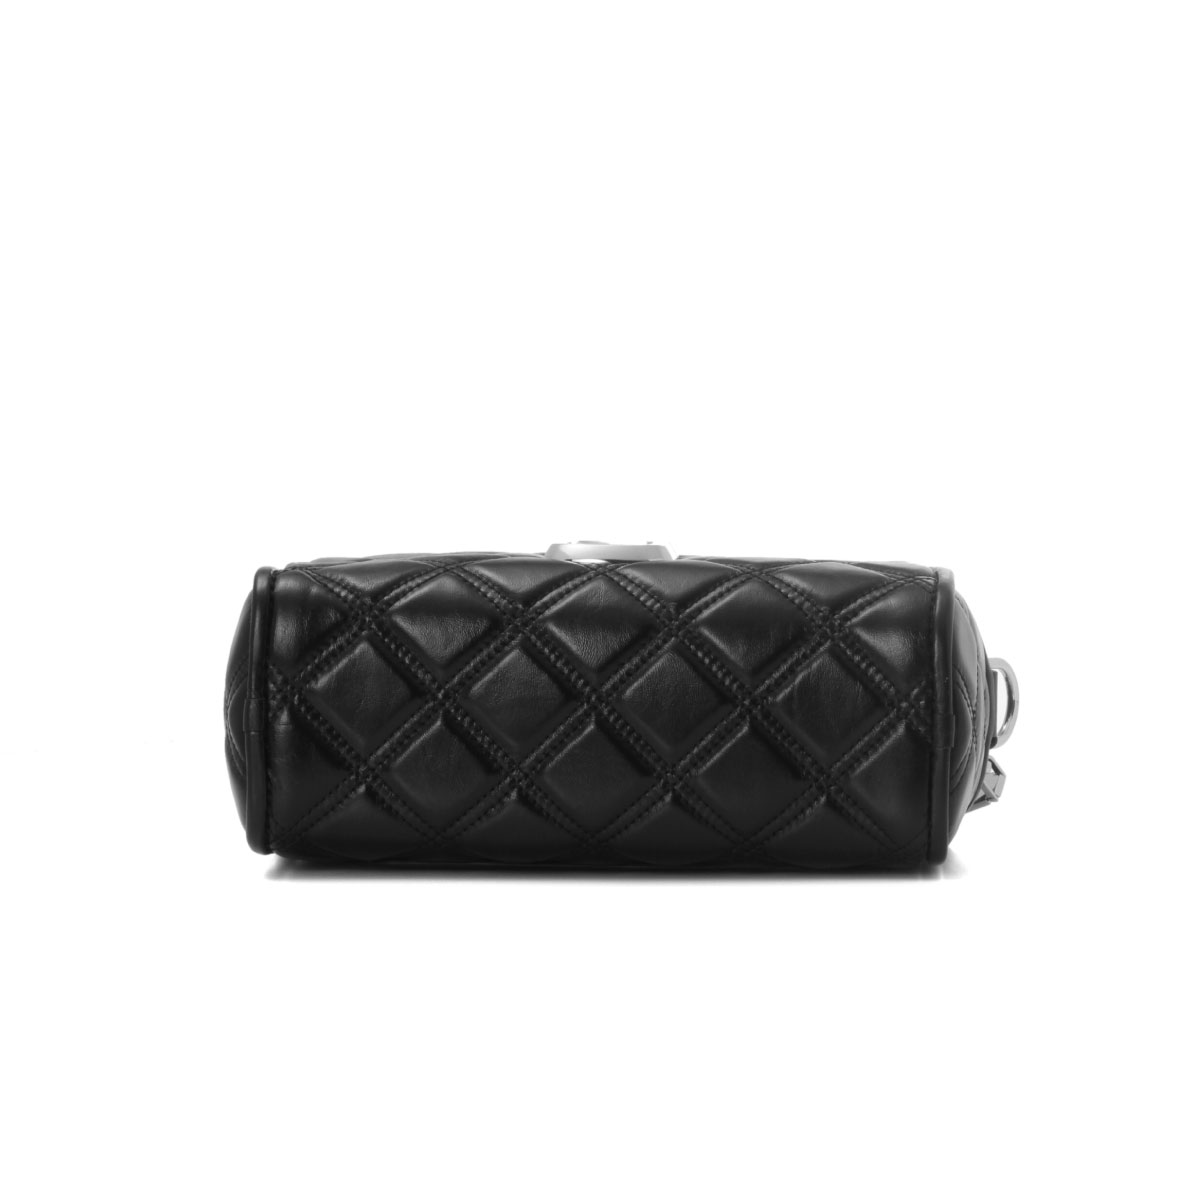 MARC JACOBS マーク ジェイコブス   ショルダーバッグ   THE QUILTED SOFTSHOT 21 ザ キルテッド ソフトショット 21